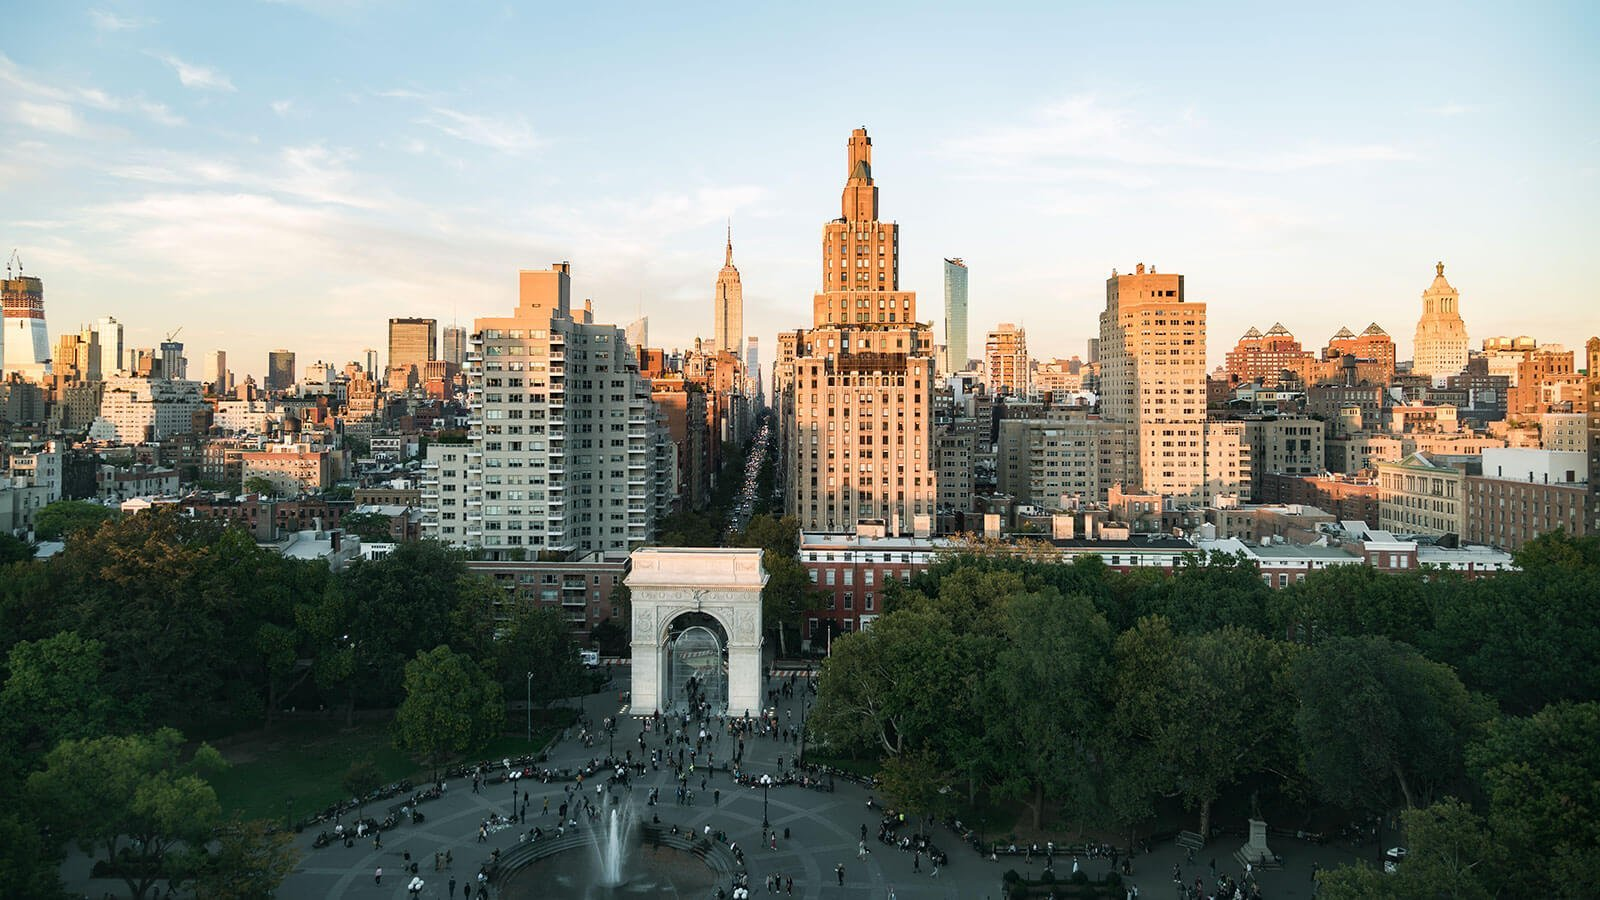 Nyu Tisch Acceptance Rate >> Business/Commerce, General | Cappex.com